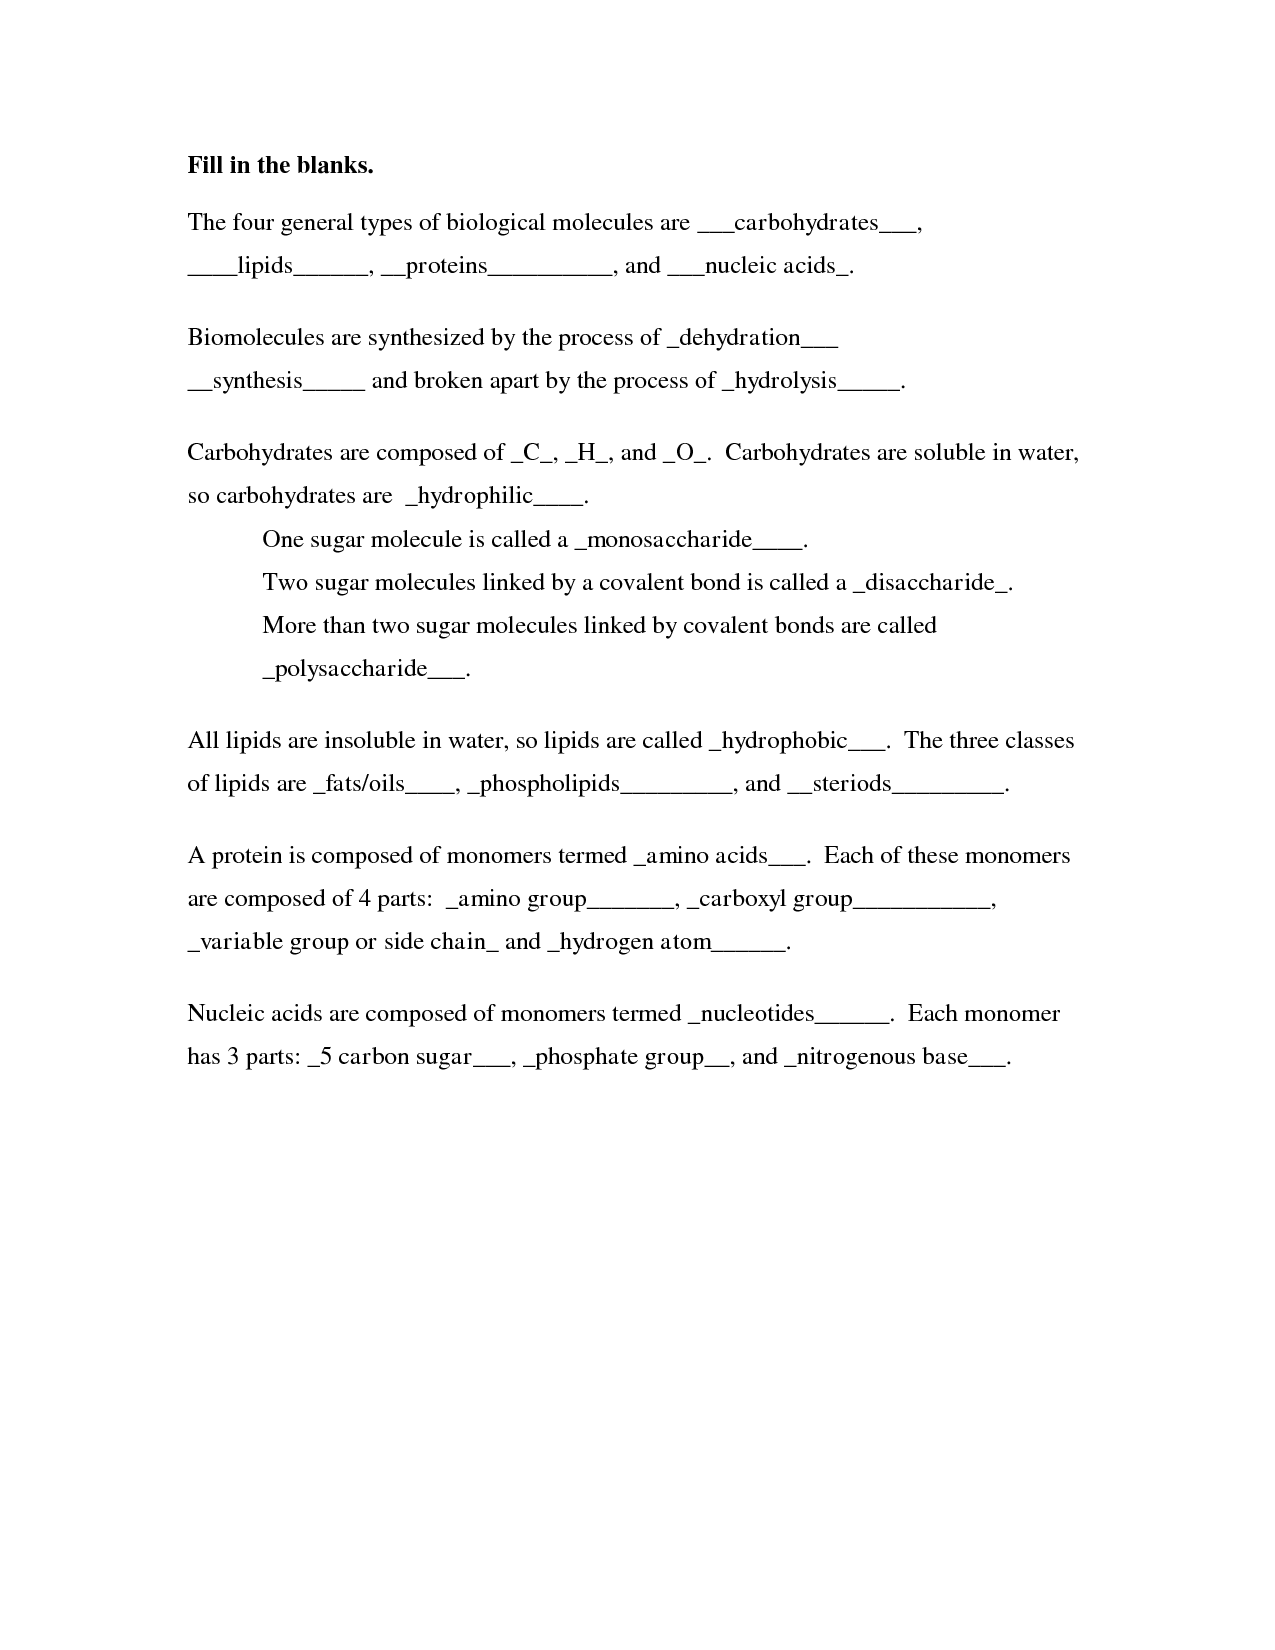 35 Carbohydrates Fats And Proteins Worksheet